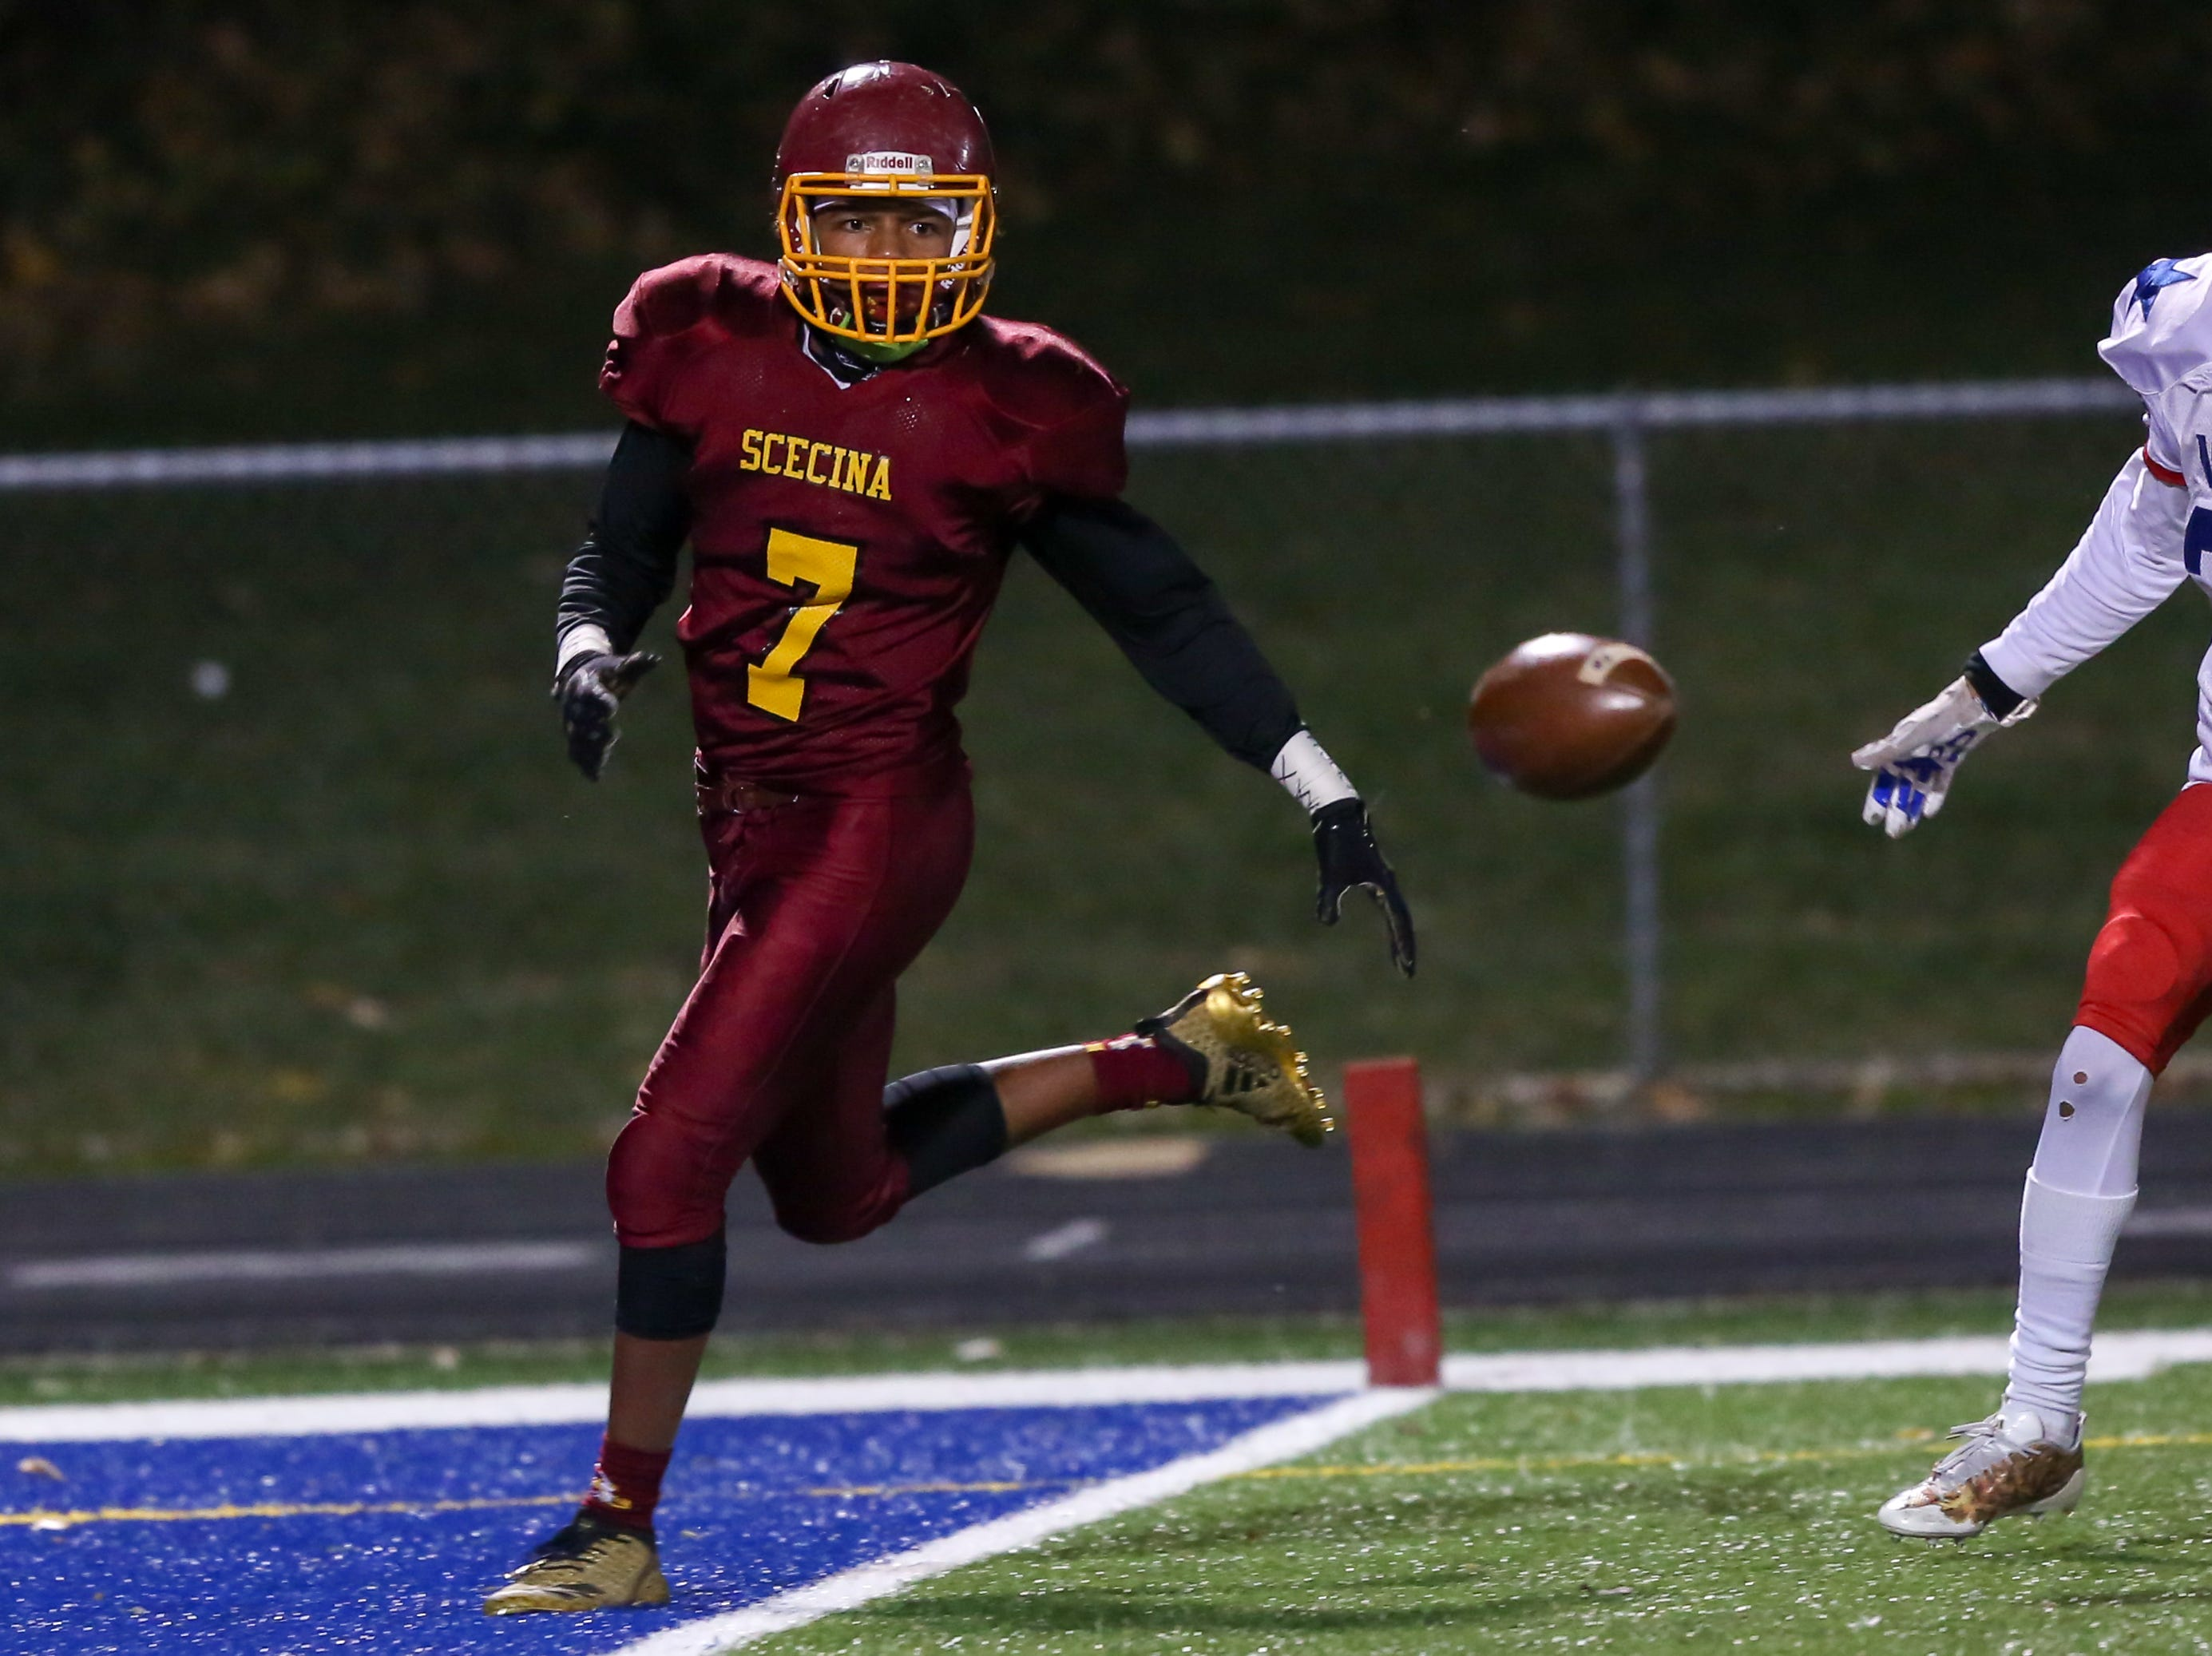 Scecina's Armahn Hillman (7) finds the ball bouncing short on this pass attempt during the first half of Indianapolis Scecina vs Western Boone High School varsity football in the Class 2A Regional Championship held at Roncalli High School, Friday, November 9, 2018.